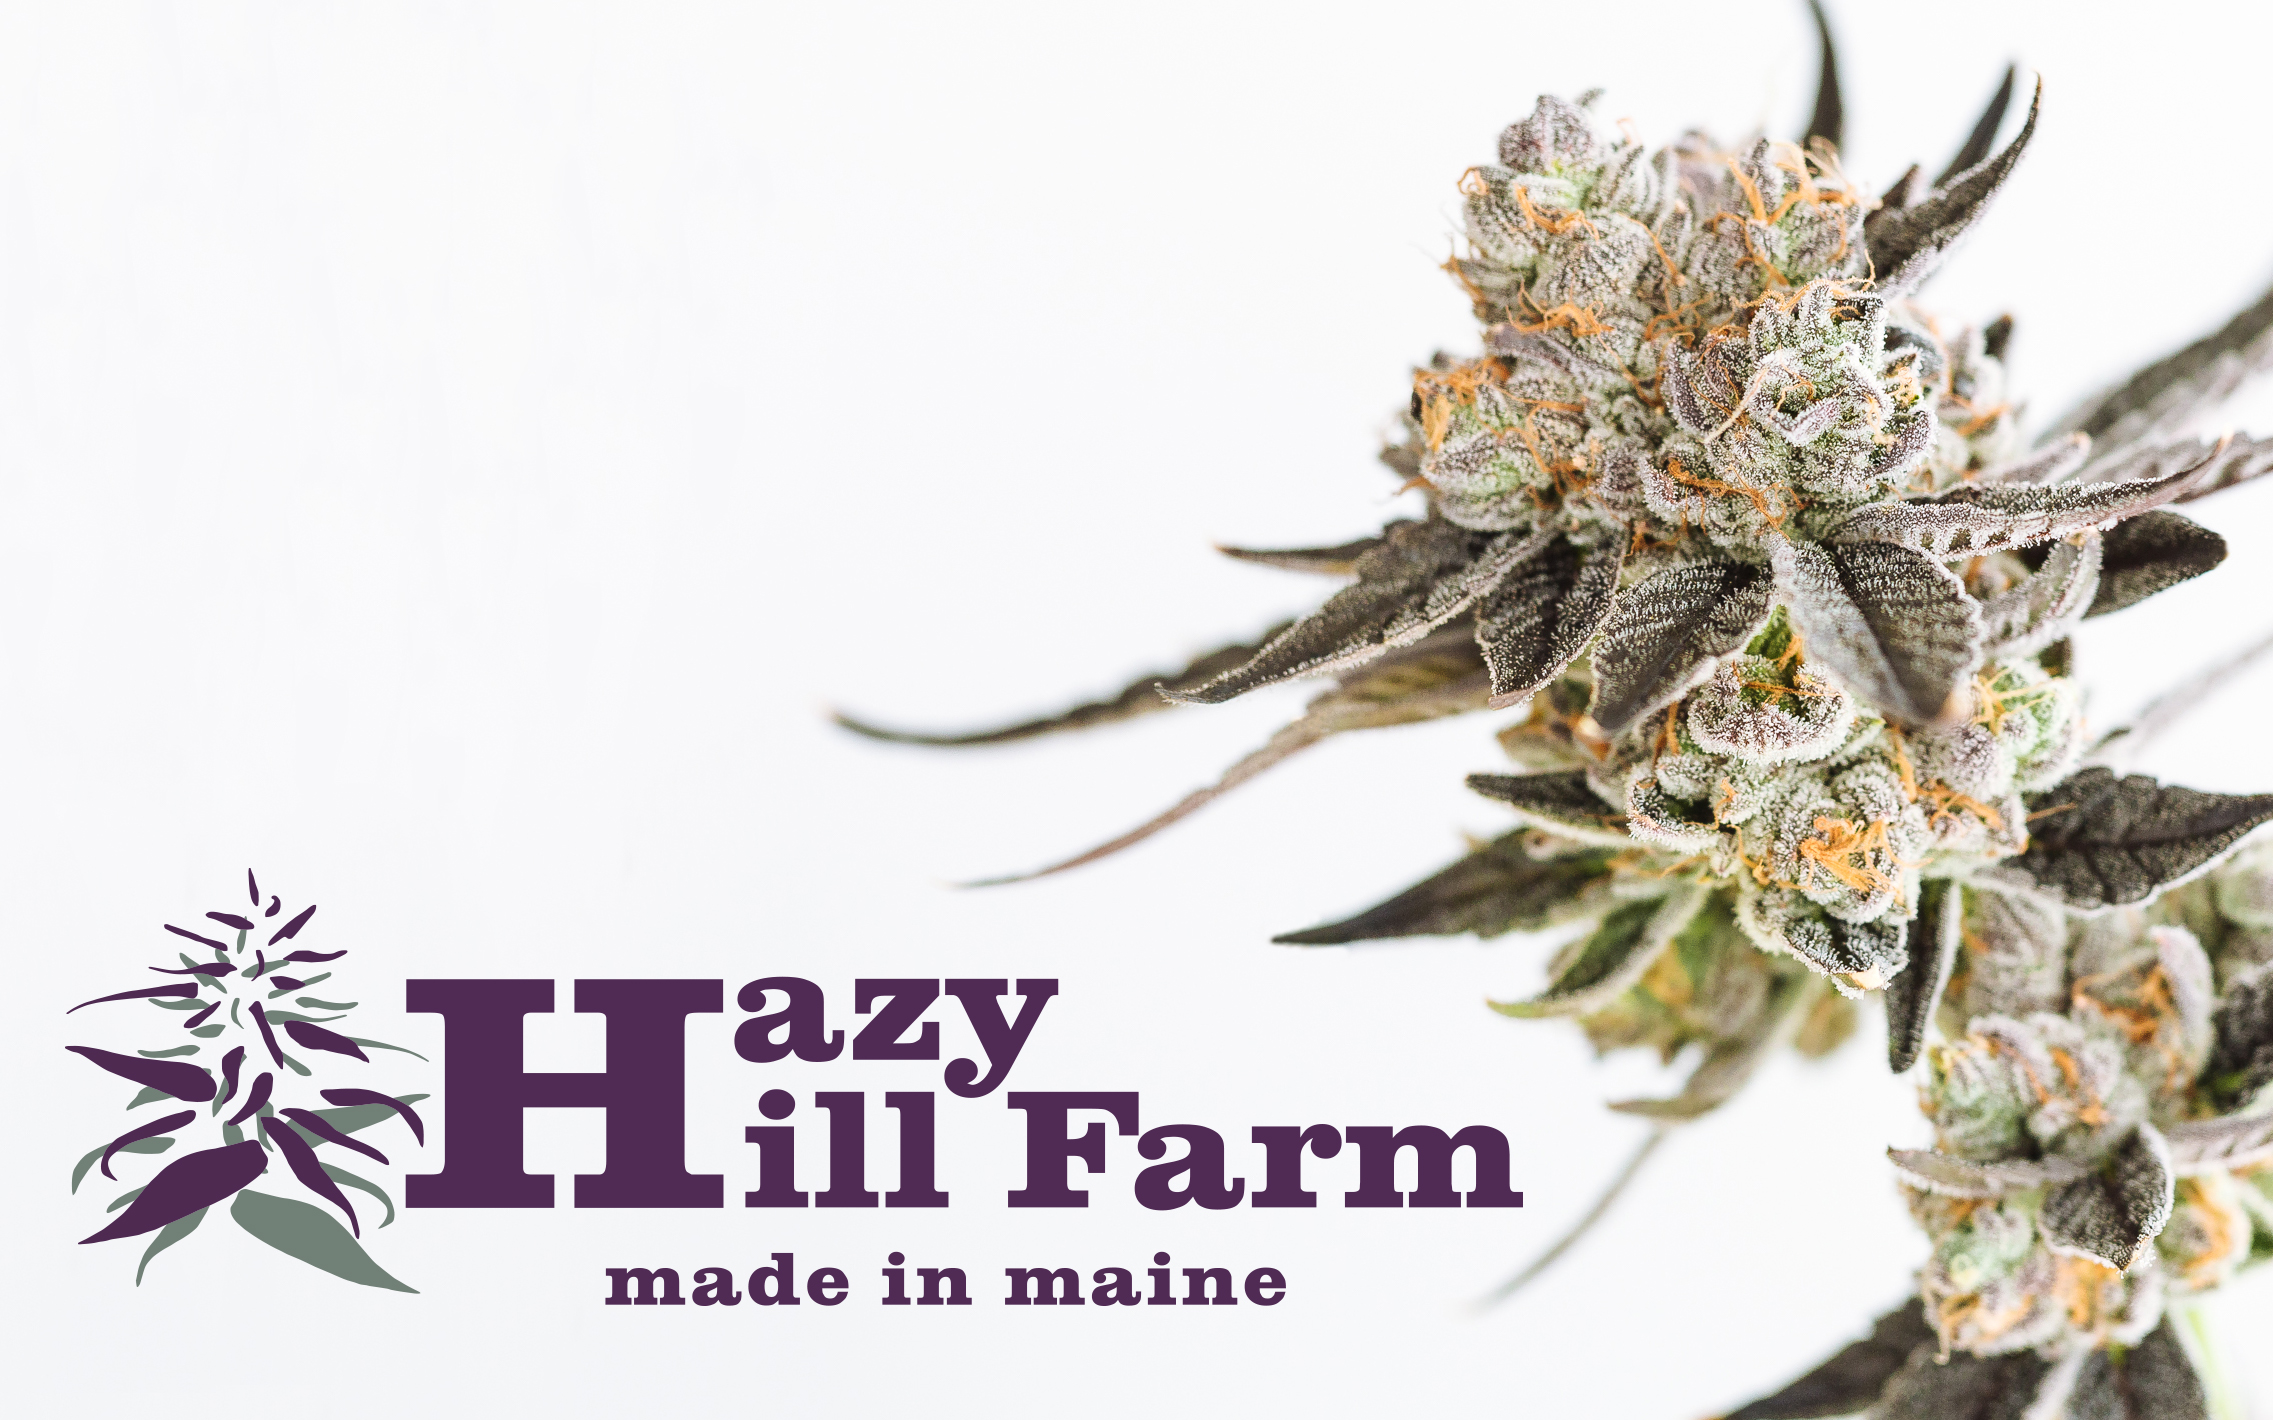 Hazy Hill Farm Cannabis Co